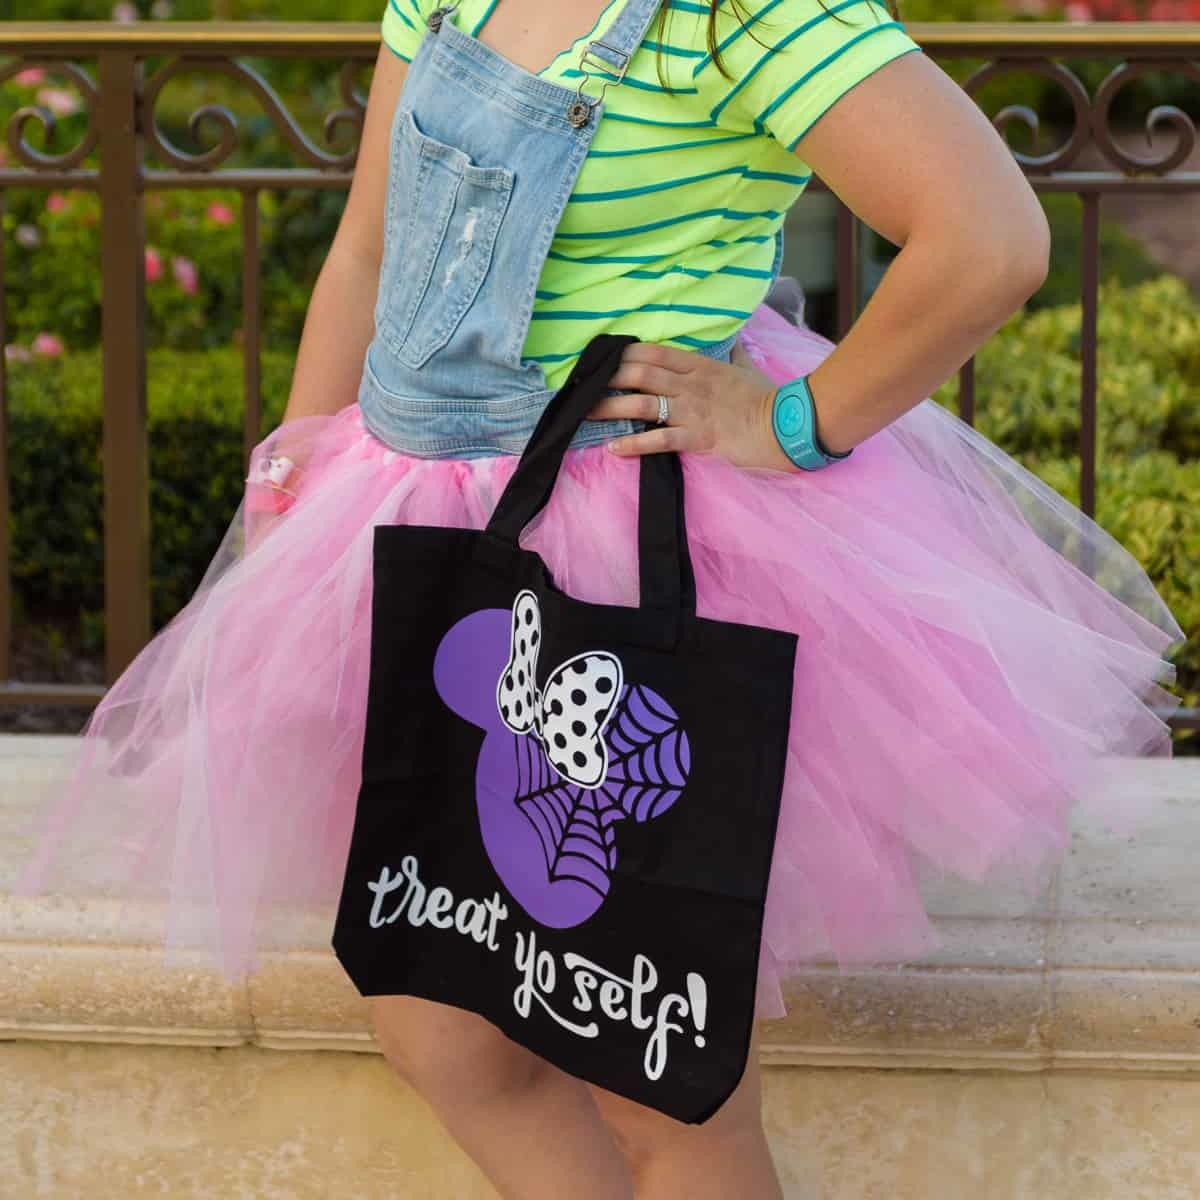 Bonnie from Toy Story 4 Tutu Costume at Disney World